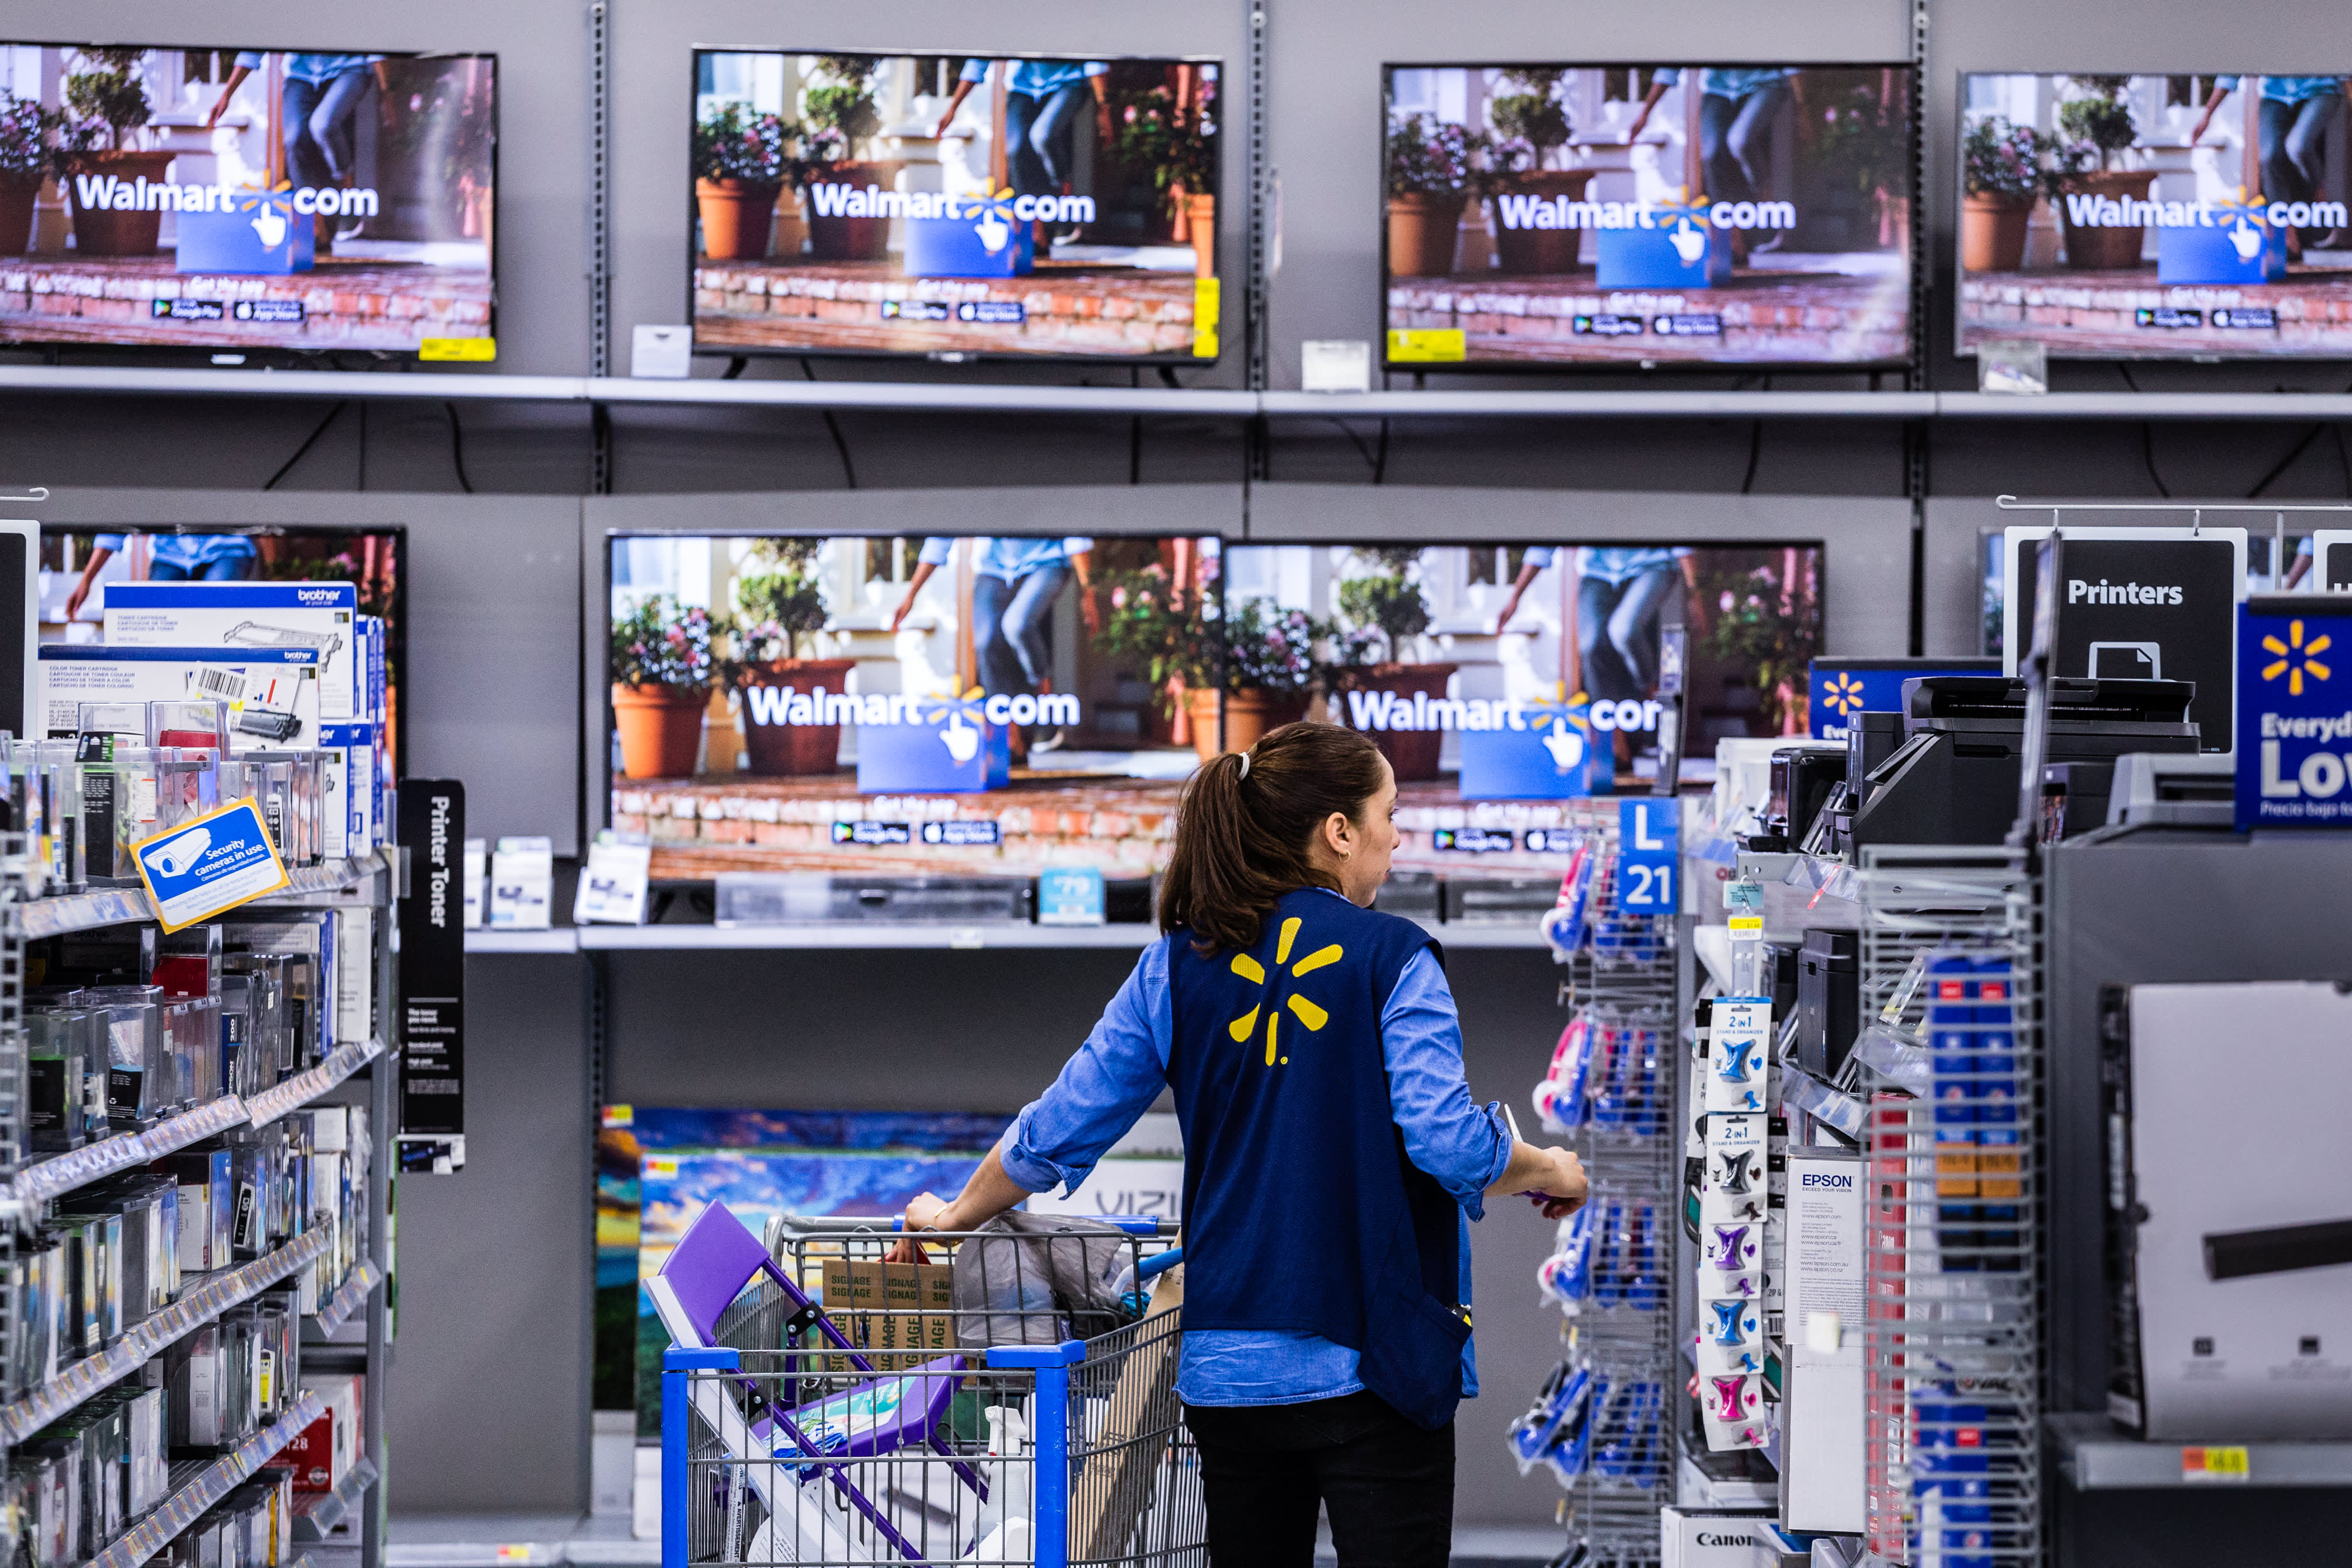 Walmart changed the way it buys shopping bags and saved $60 million—and that's just one way it cut costs